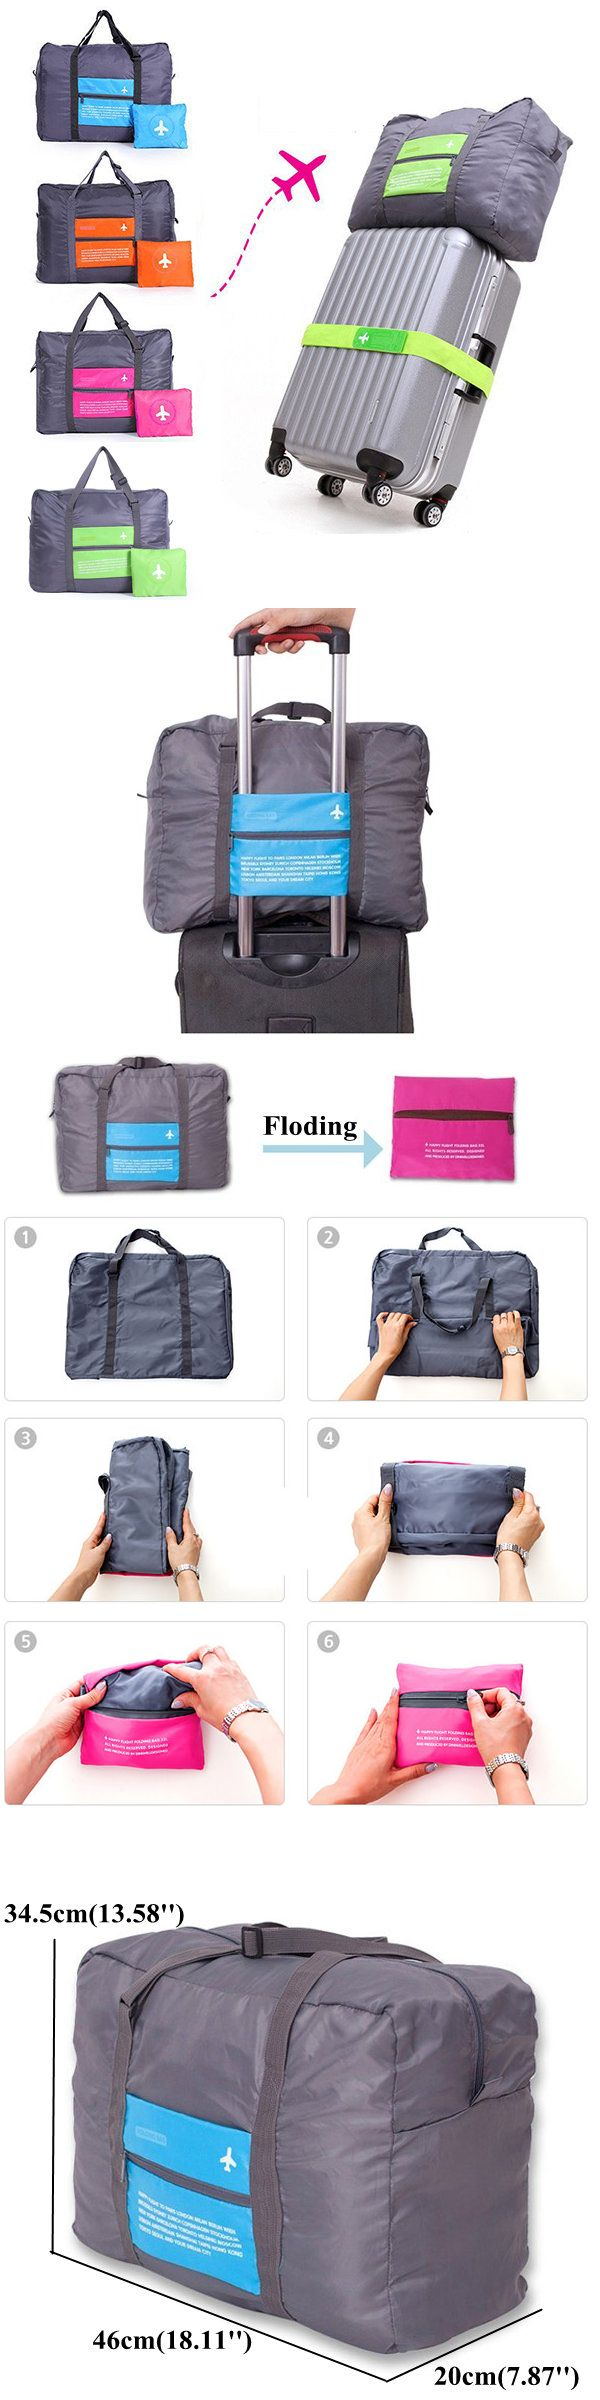 US$6.89 Four Colors Nylon Folding Large Capacity Travel Bag Storage Bag